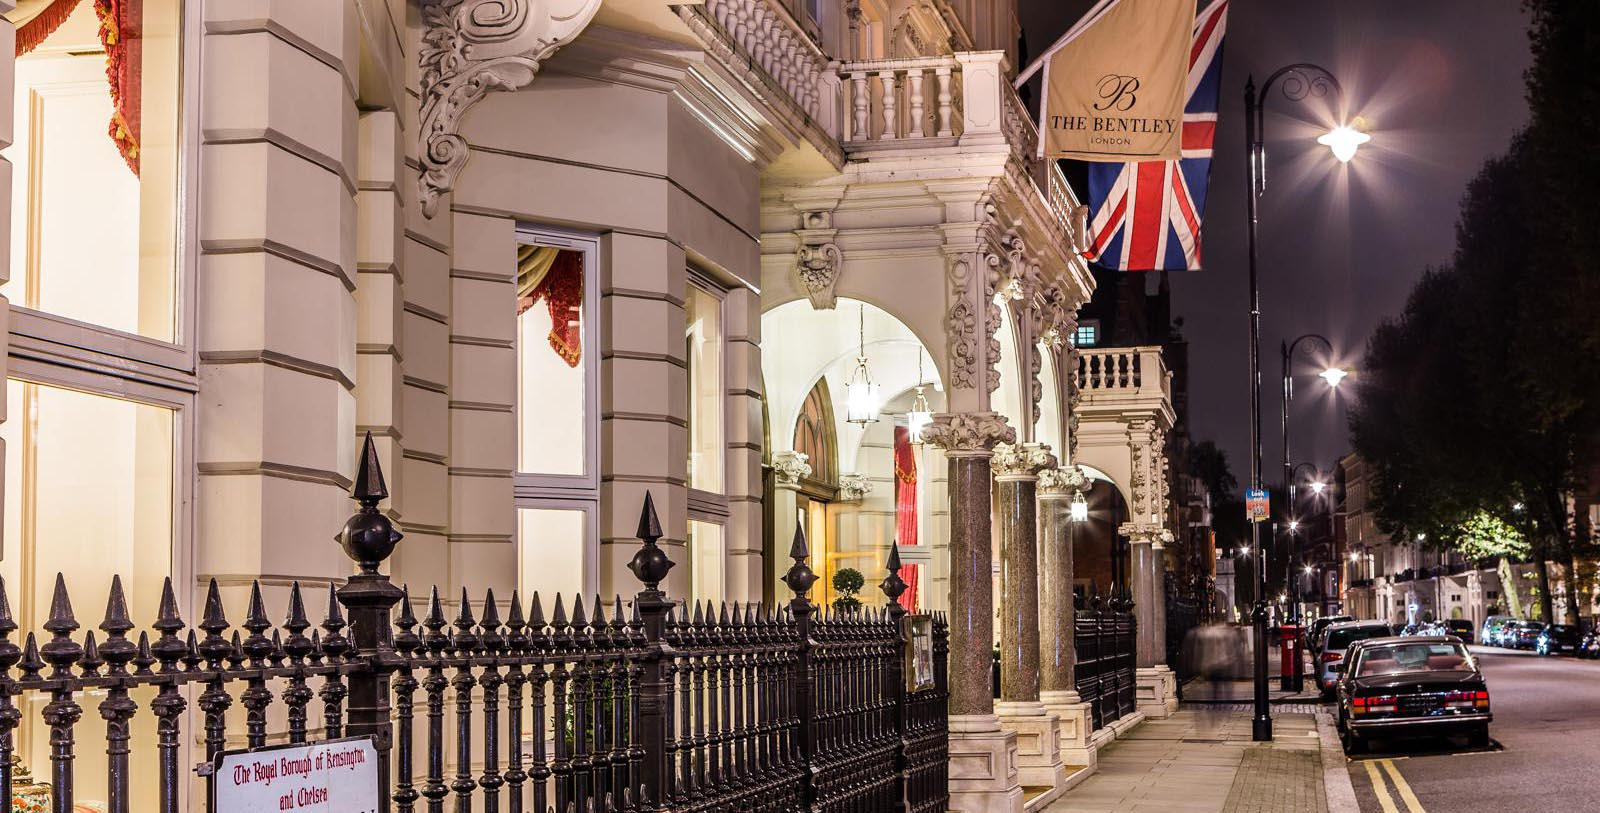 Image of Hotel Front Entrance at The Bentley London, 1880, Member of Historic Hotels Worldwide, in London, England, United Kingdom, Overview